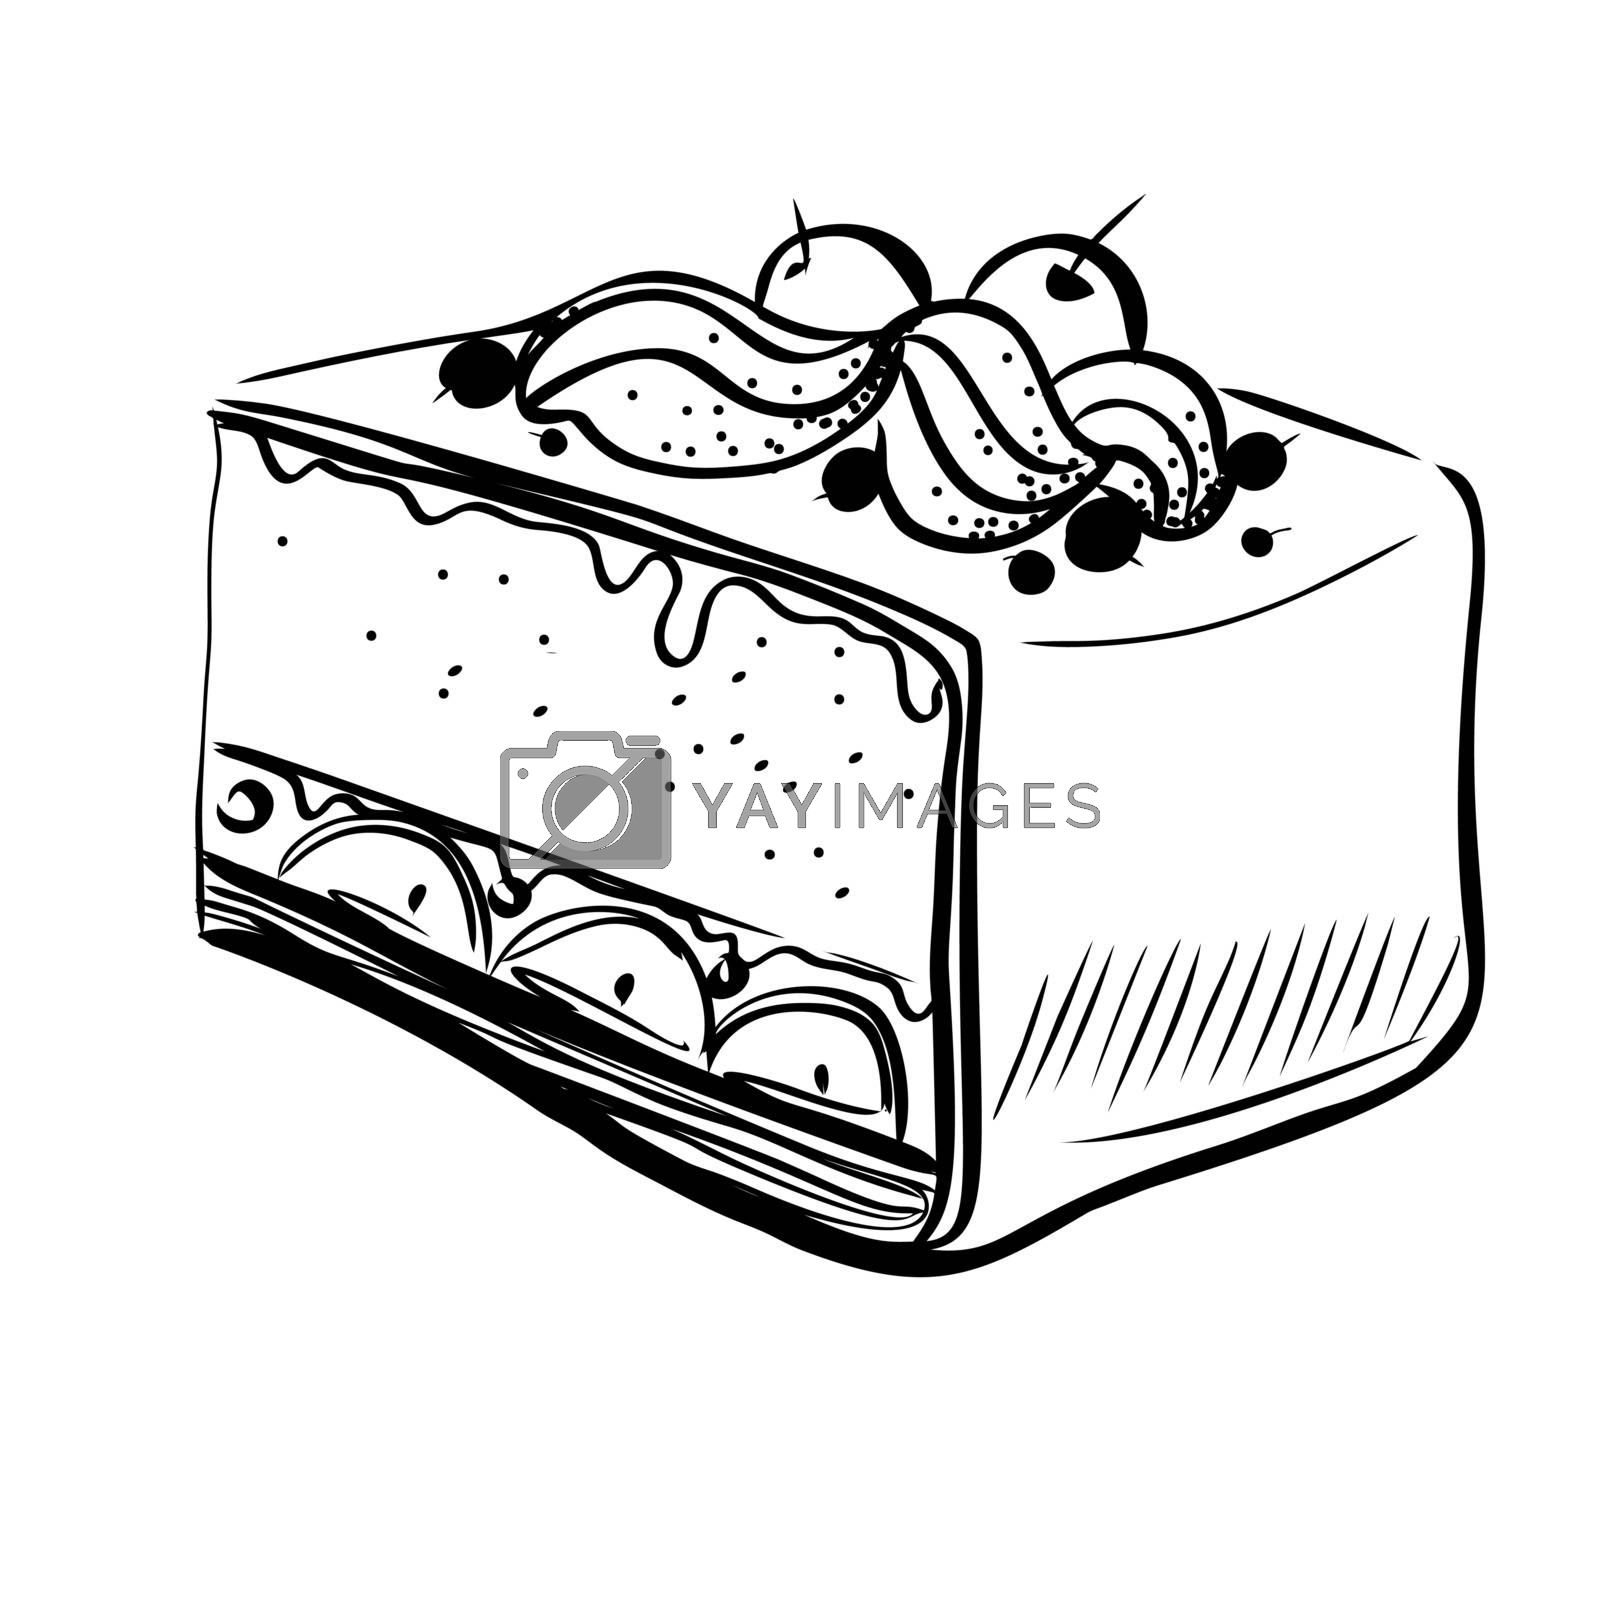 Hand Drawn Sketch of Black and White Piece of Cheesecake. Vintage Sketch. Great for Banner, Label, Poster